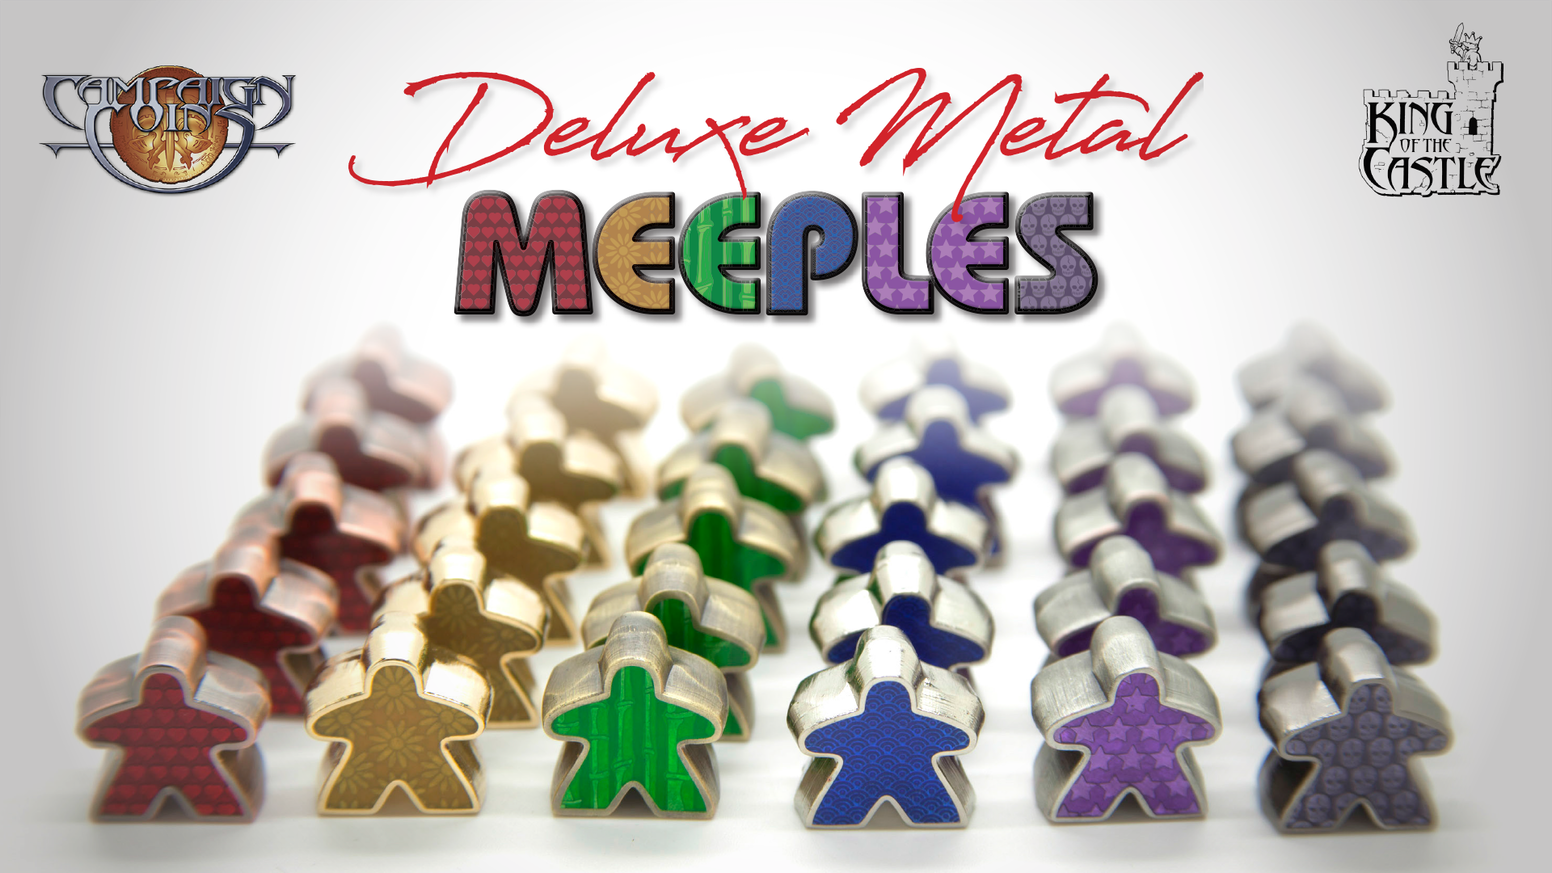 Beautiful metal meeples with gorgeous colour enamel, designed by Daniel Solis.